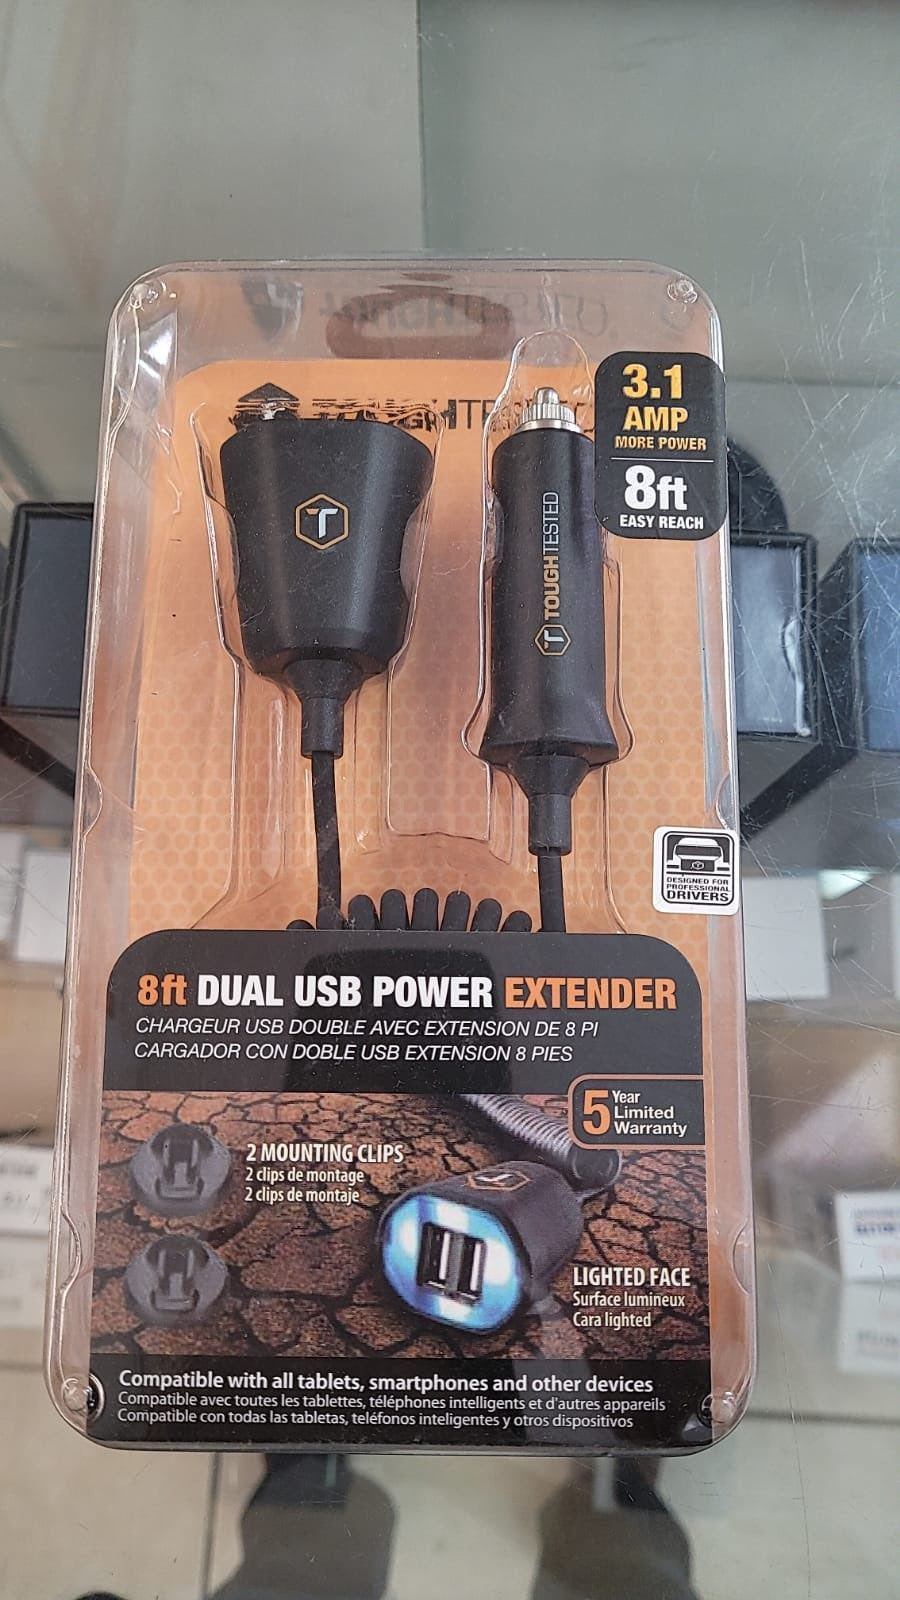 Toughtested 8ft Dual USB Power Extender